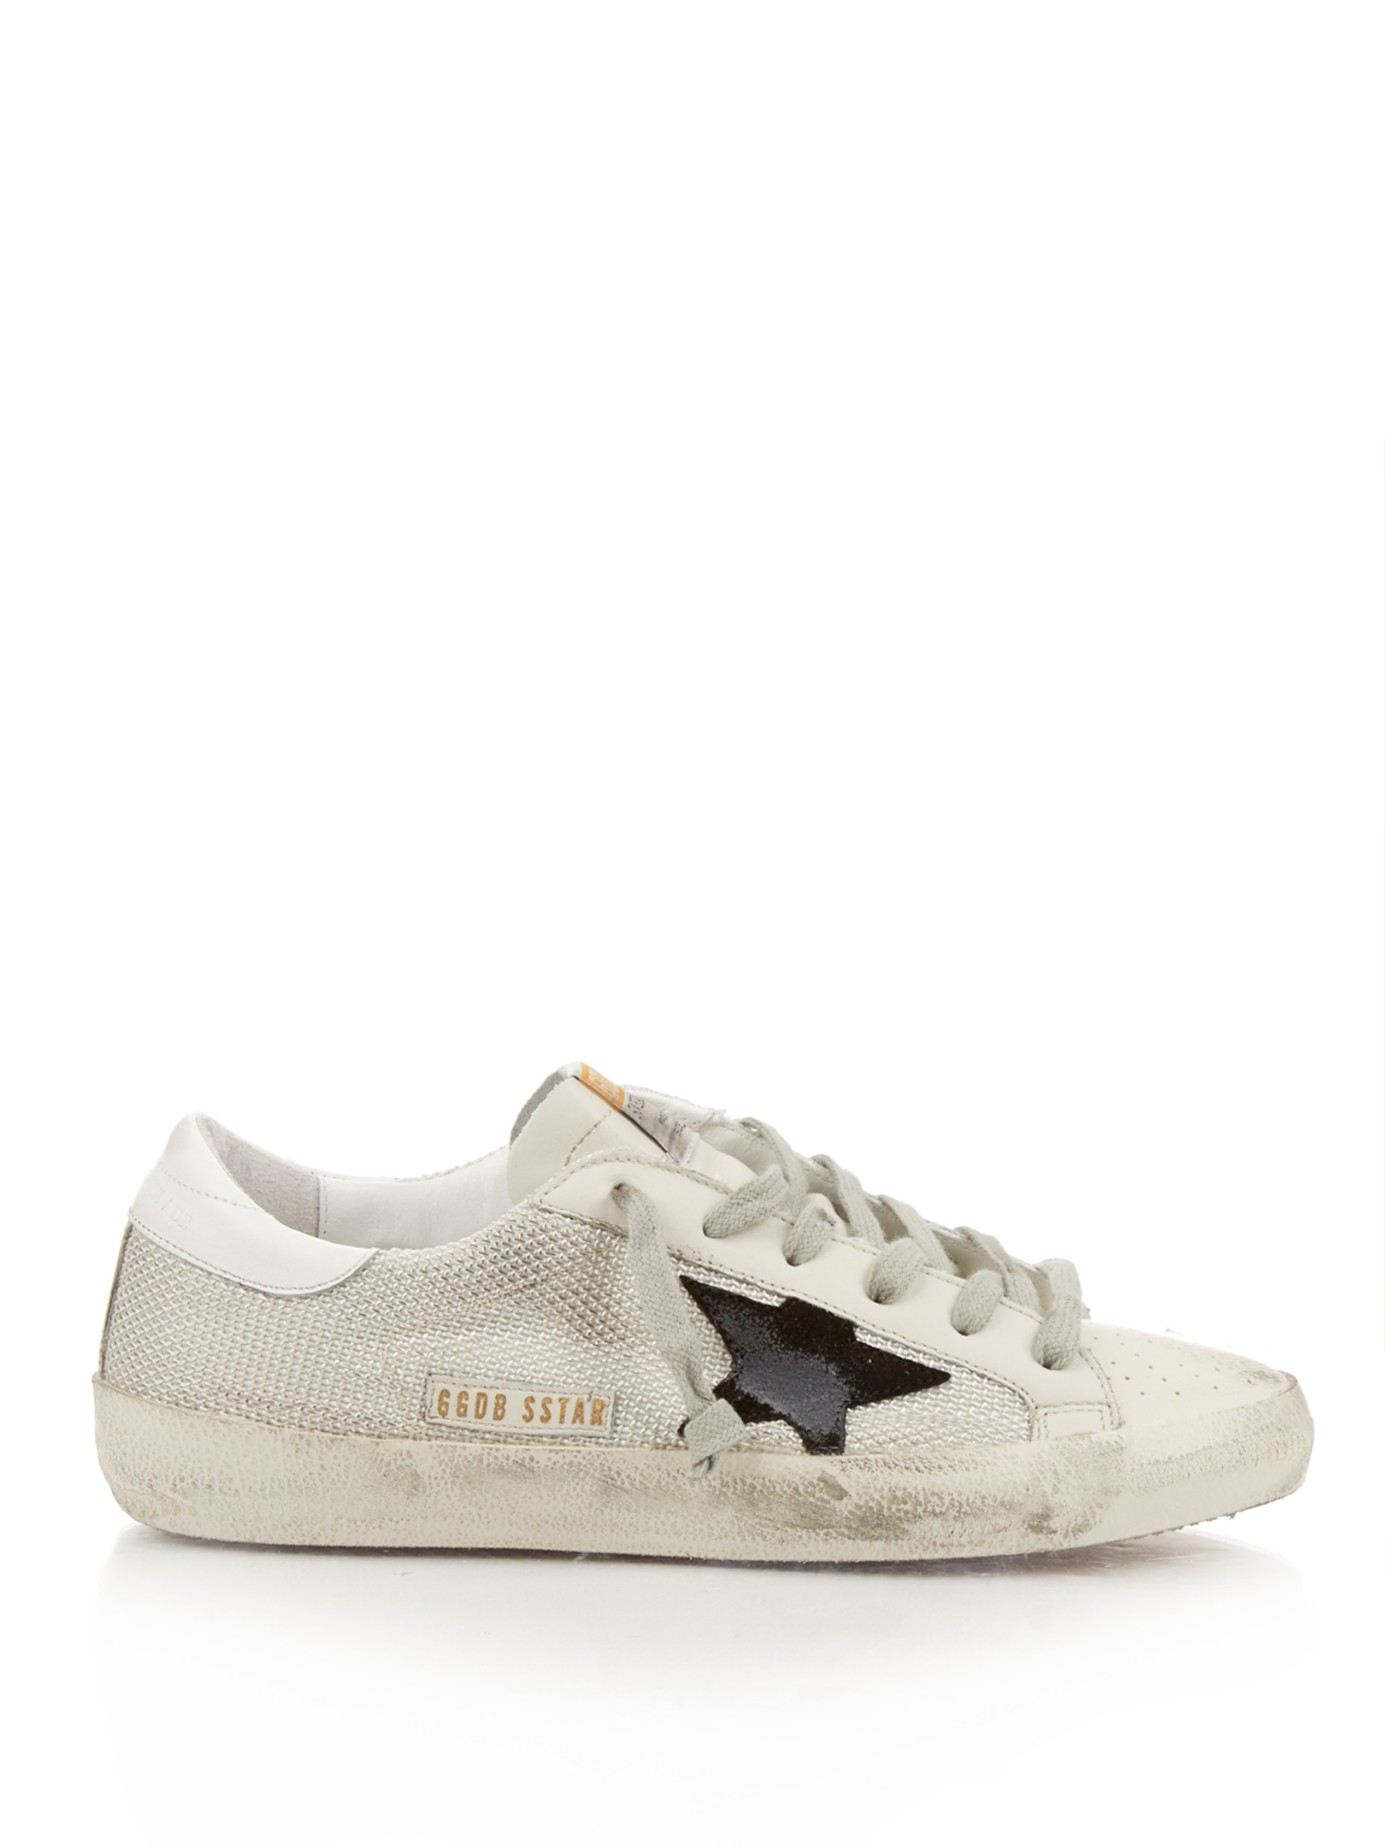 from china brand new unisex cheap online Golden Goose Deluxe Brand 'Superstar' trainers cheap sale best sale cheap prices vhtx5F6r9